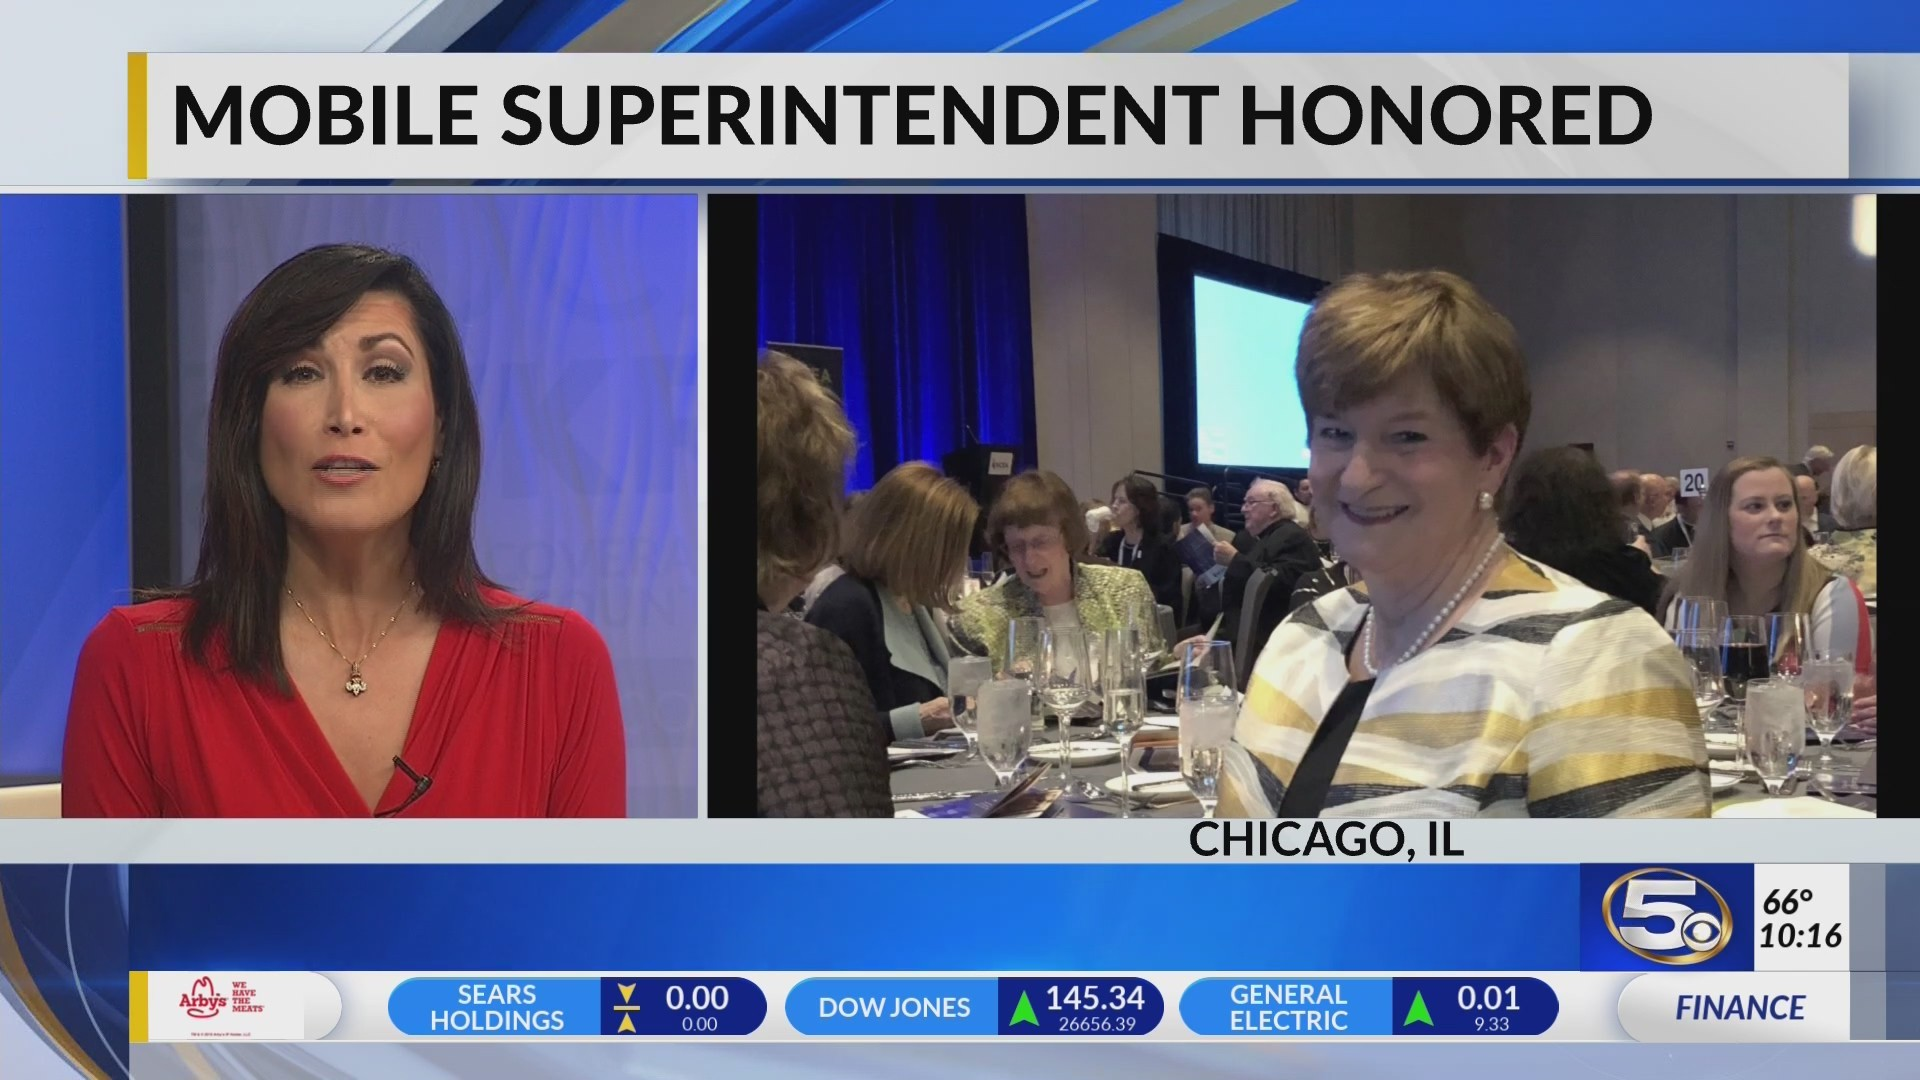 Superintendent from Mobile honored